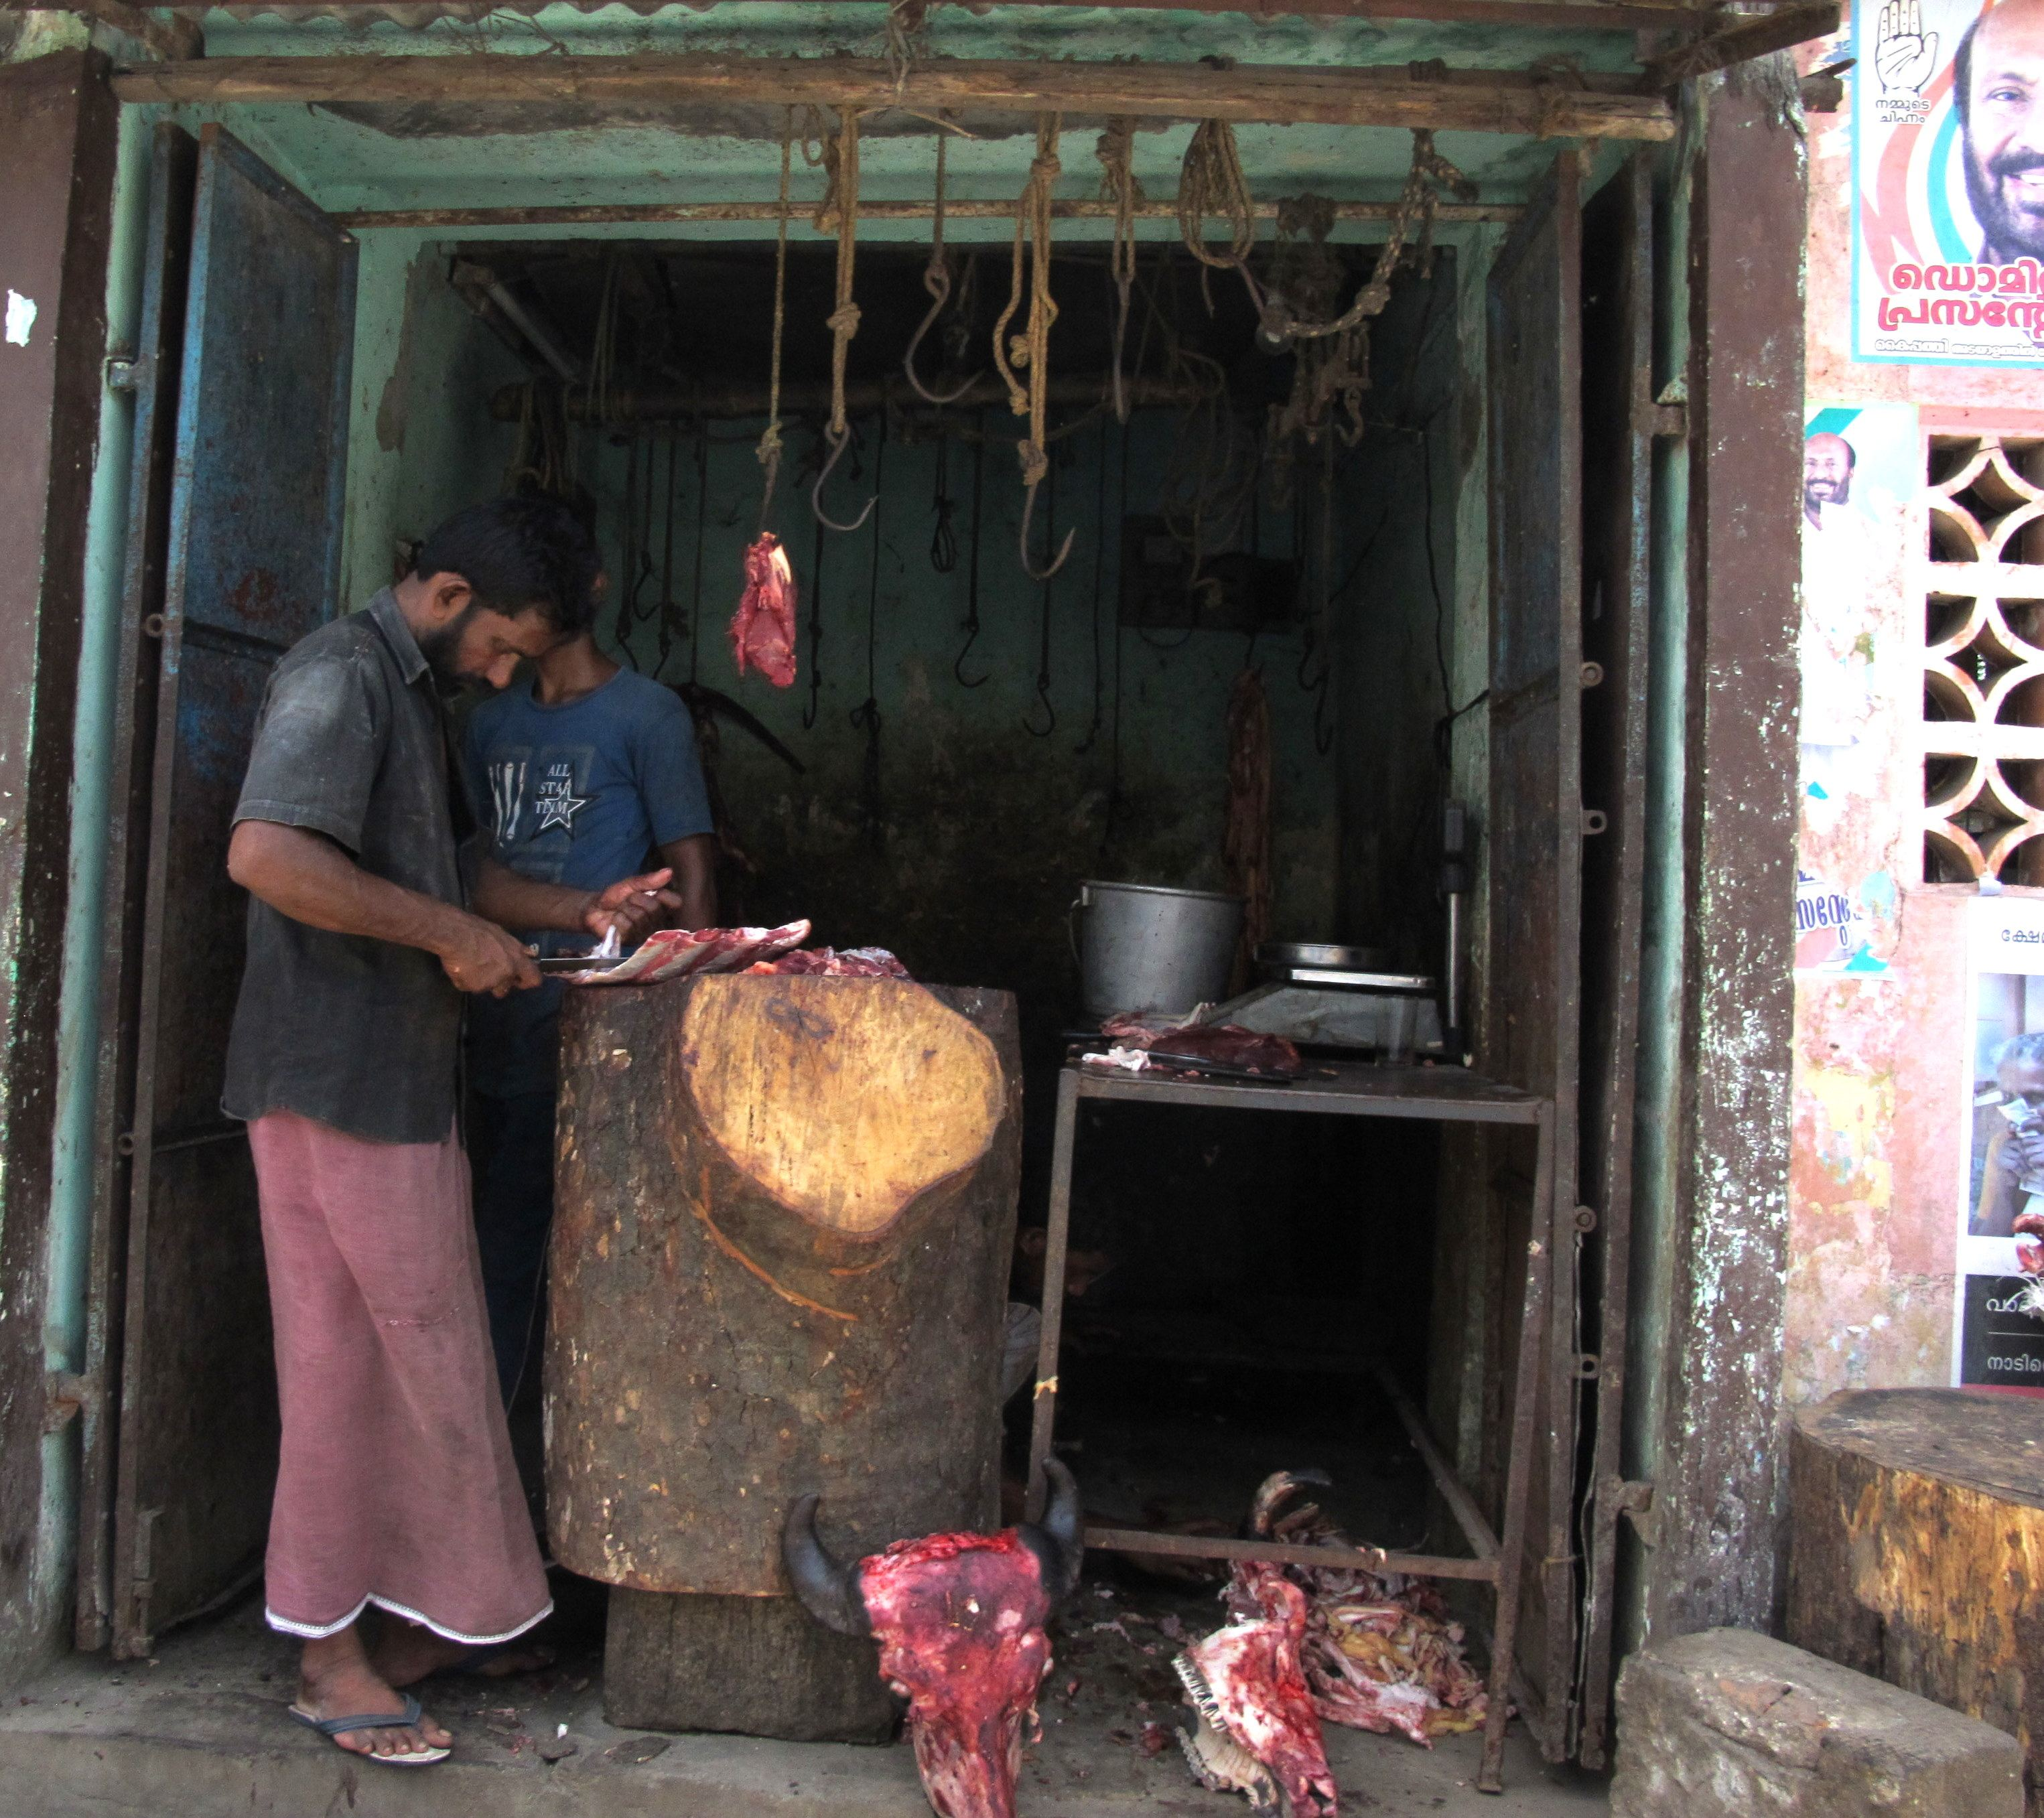 Road-side butcher, Cochin, India